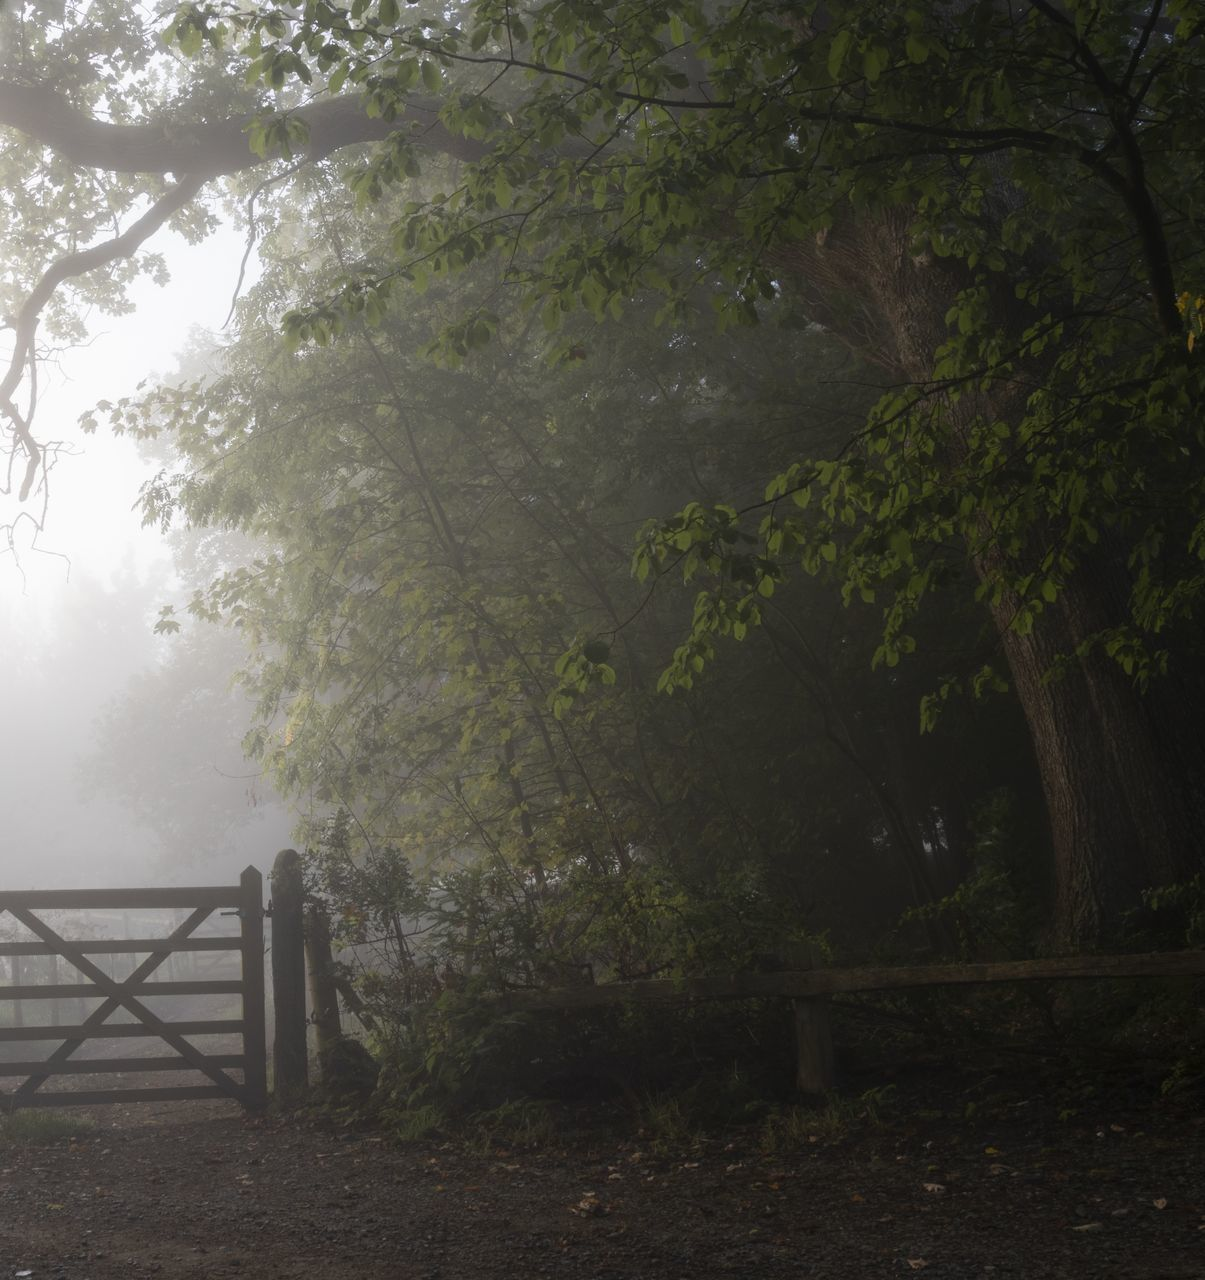 tree, plant, nature, tranquility, growth, land, forest, tranquil scene, beauty in nature, fog, no people, day, outdoors, barrier, railing, boundary, non-urban scene, scenics - nature, fence